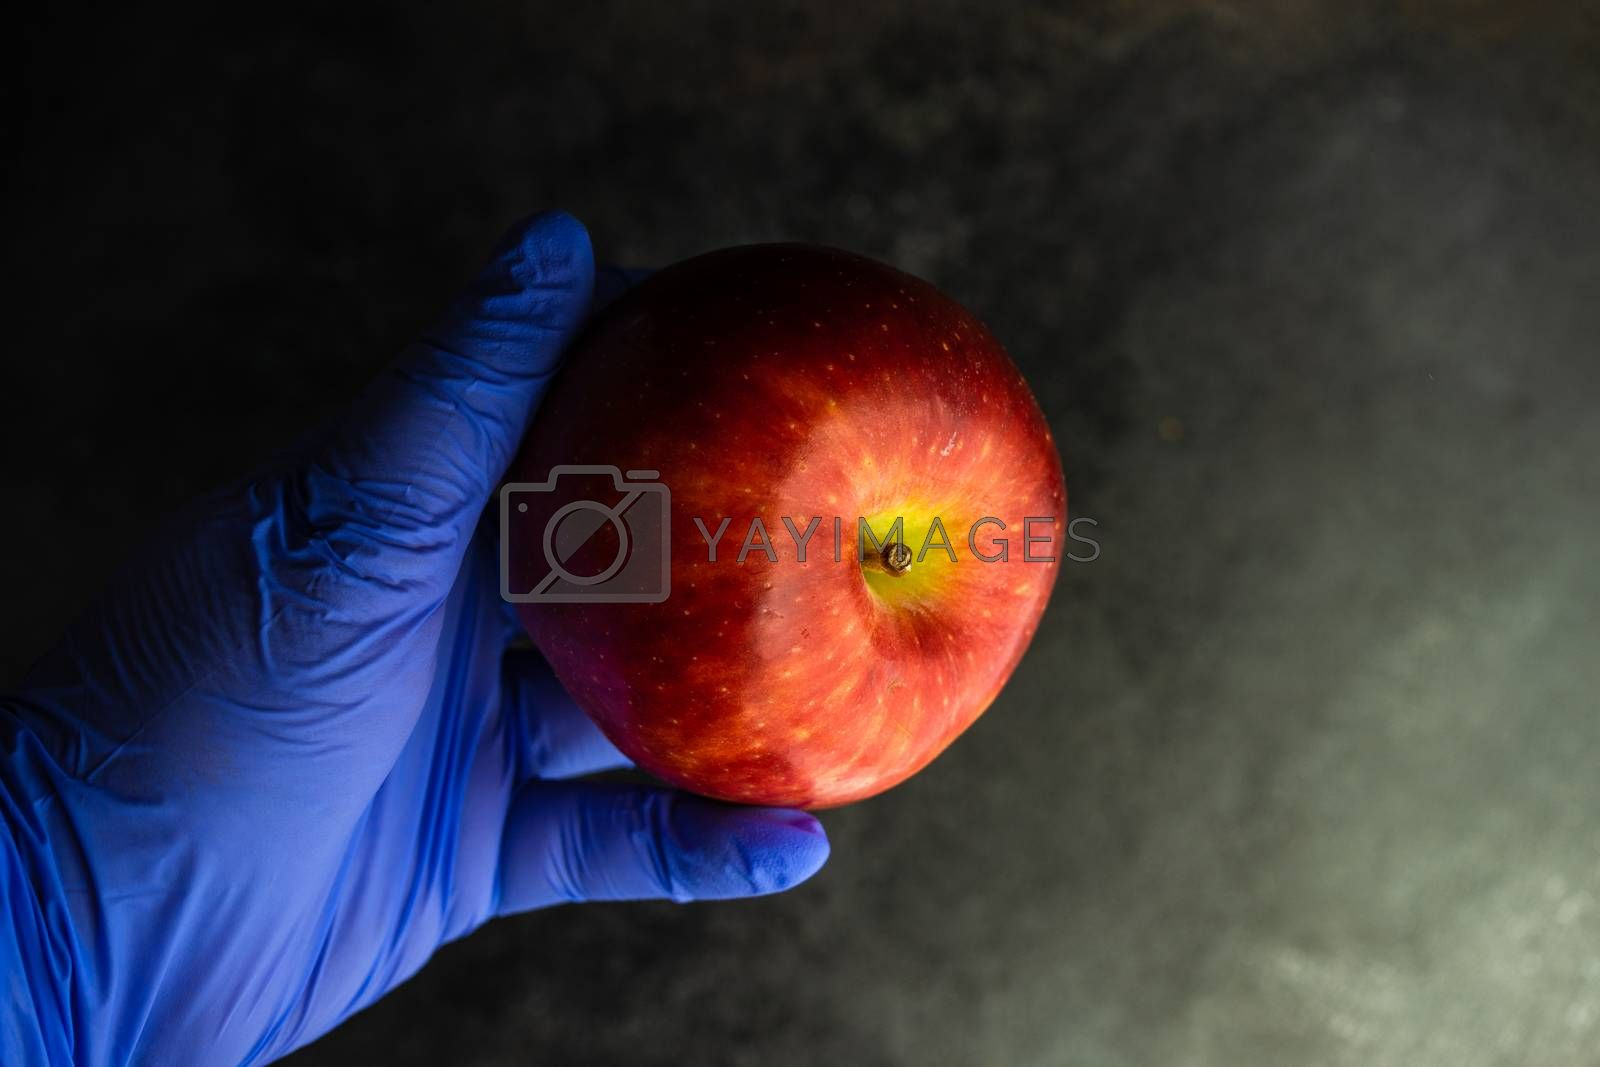 Coronavirus or Covid-19 epidemic healthcare concept with red apple in the doctor hands  on stone background with copy space